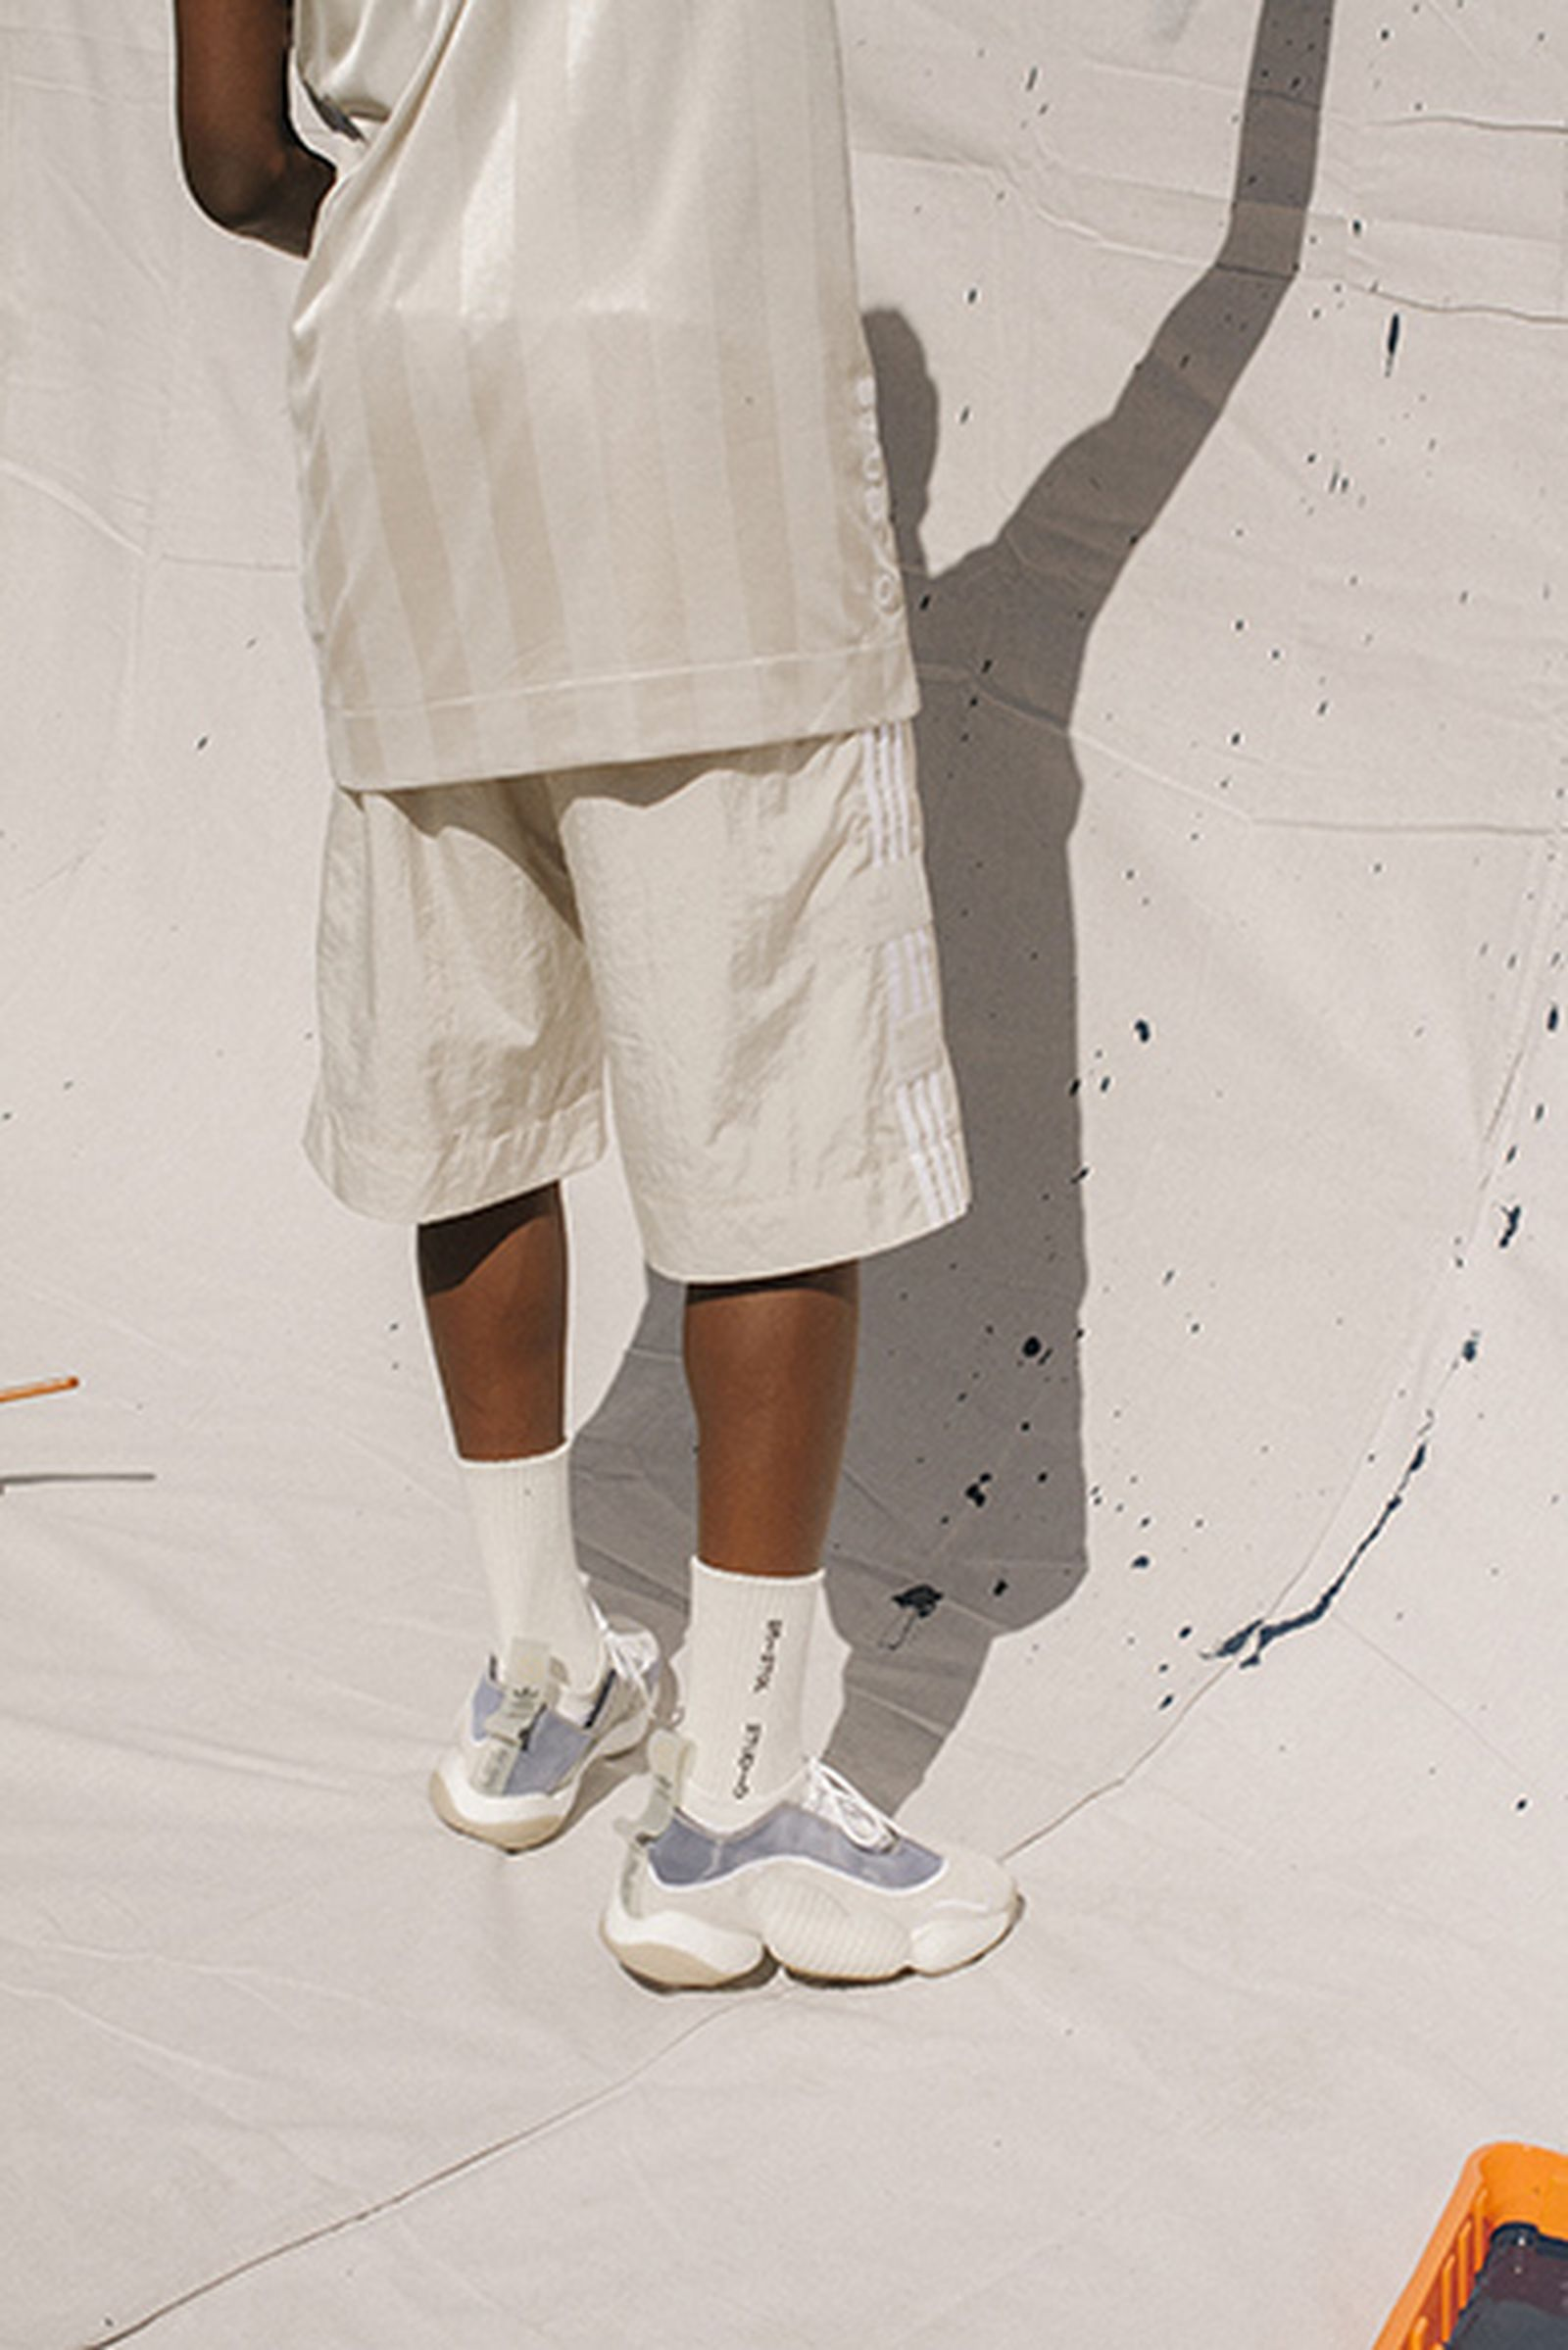 adidas originals by bristol studio sharp shooters collection Bristol-Studio buddy